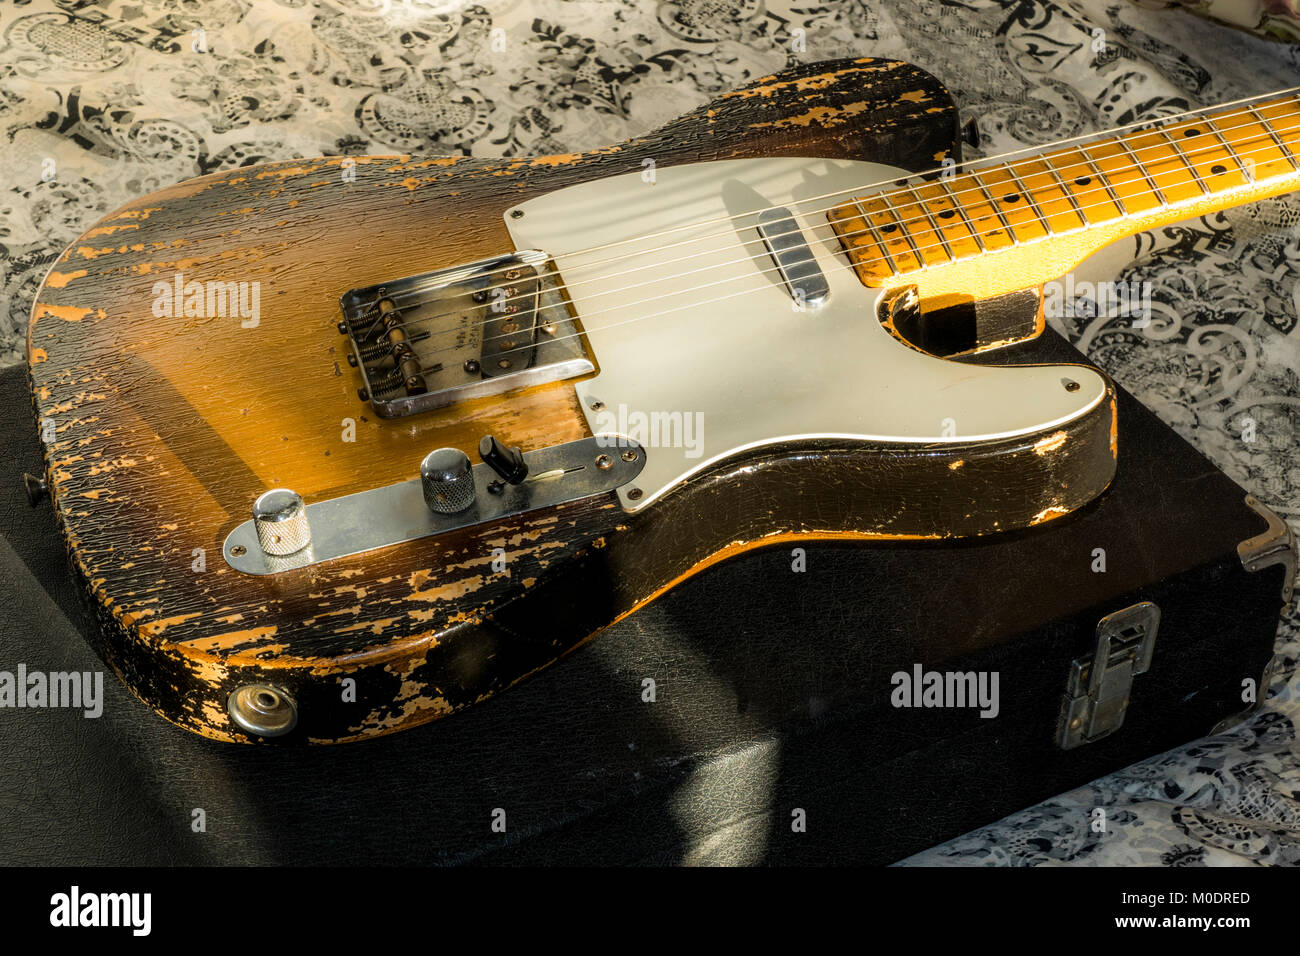 1957 Fender Telecaster electric guitar. Front of body with heavily worn 'relic' paint finish. Vintage musical instrument, - Stock Image